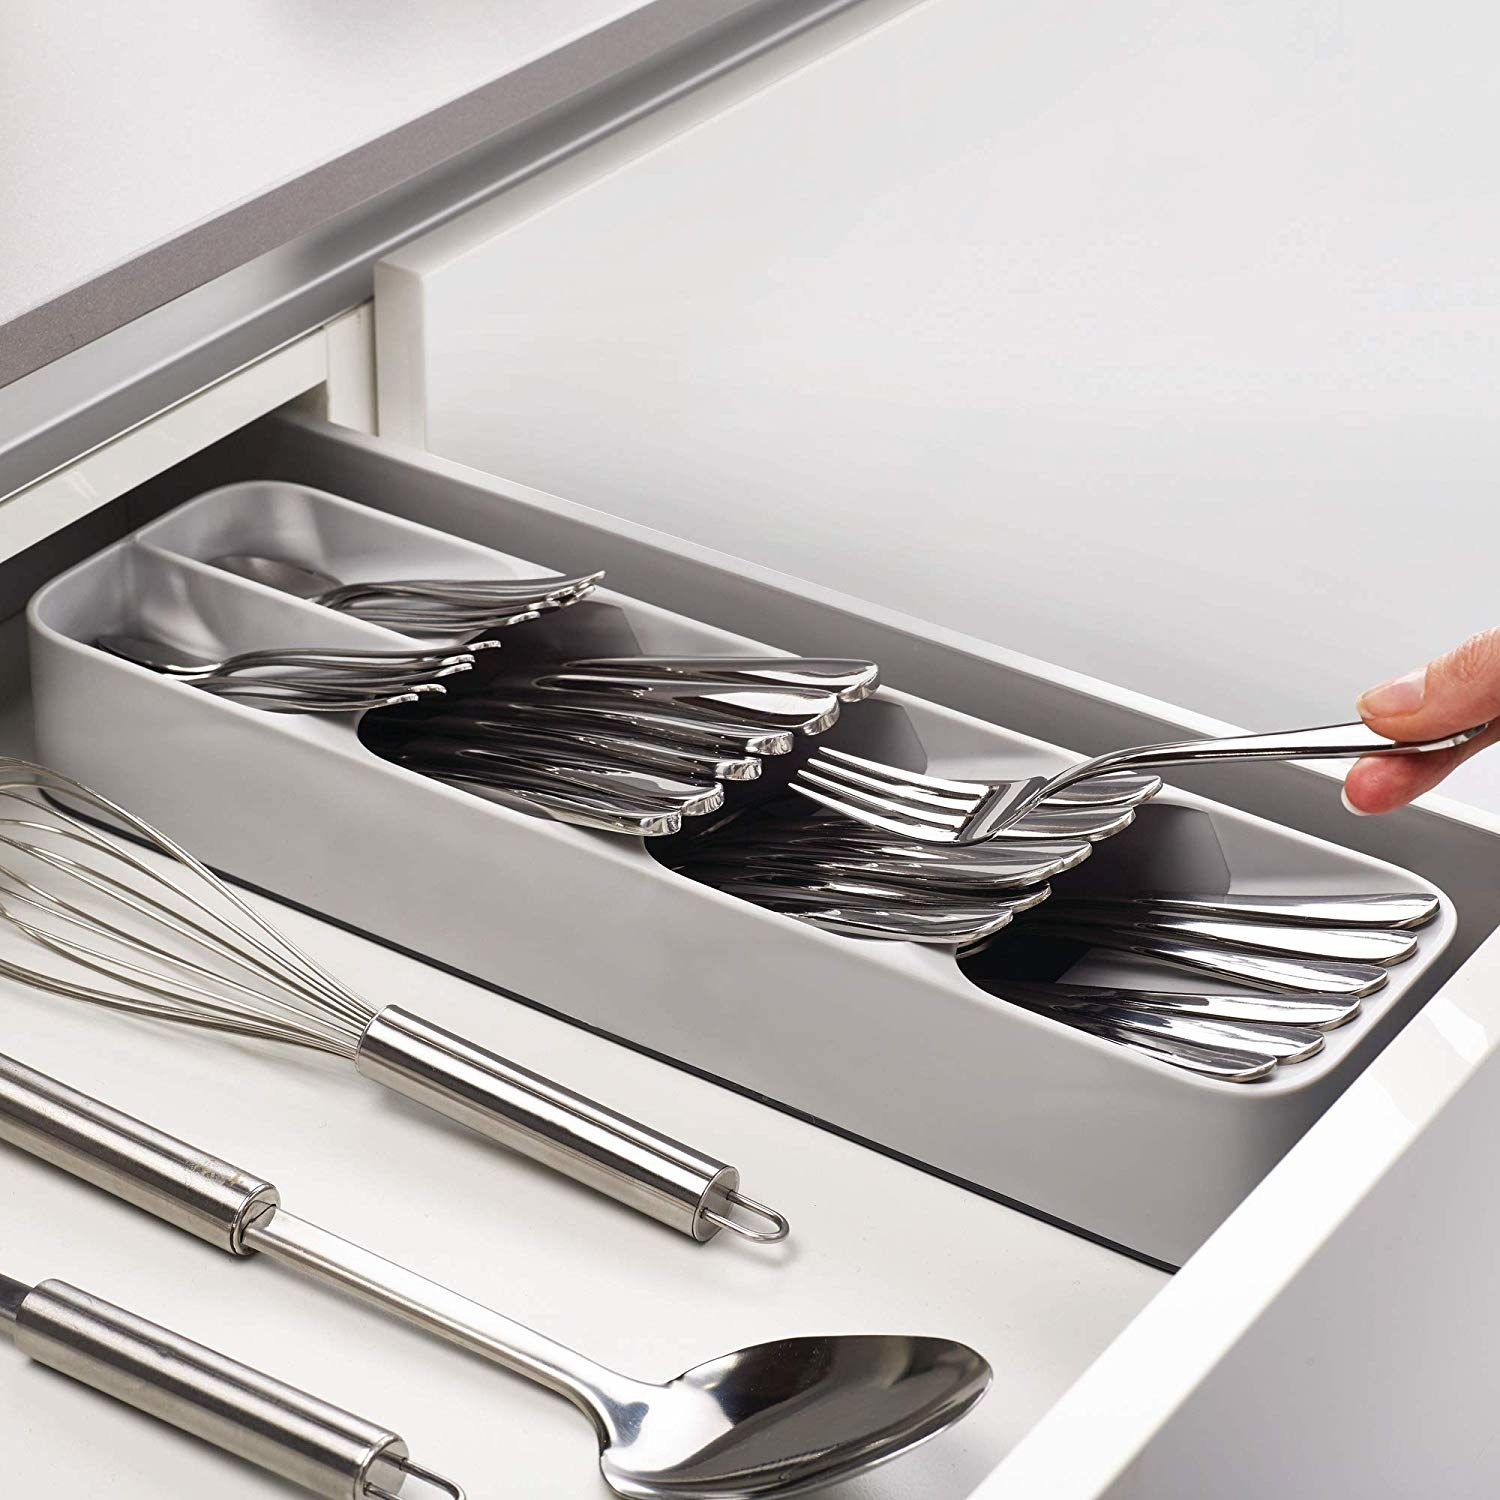 Hand placing a fork into the vertical cutlery organizing tray